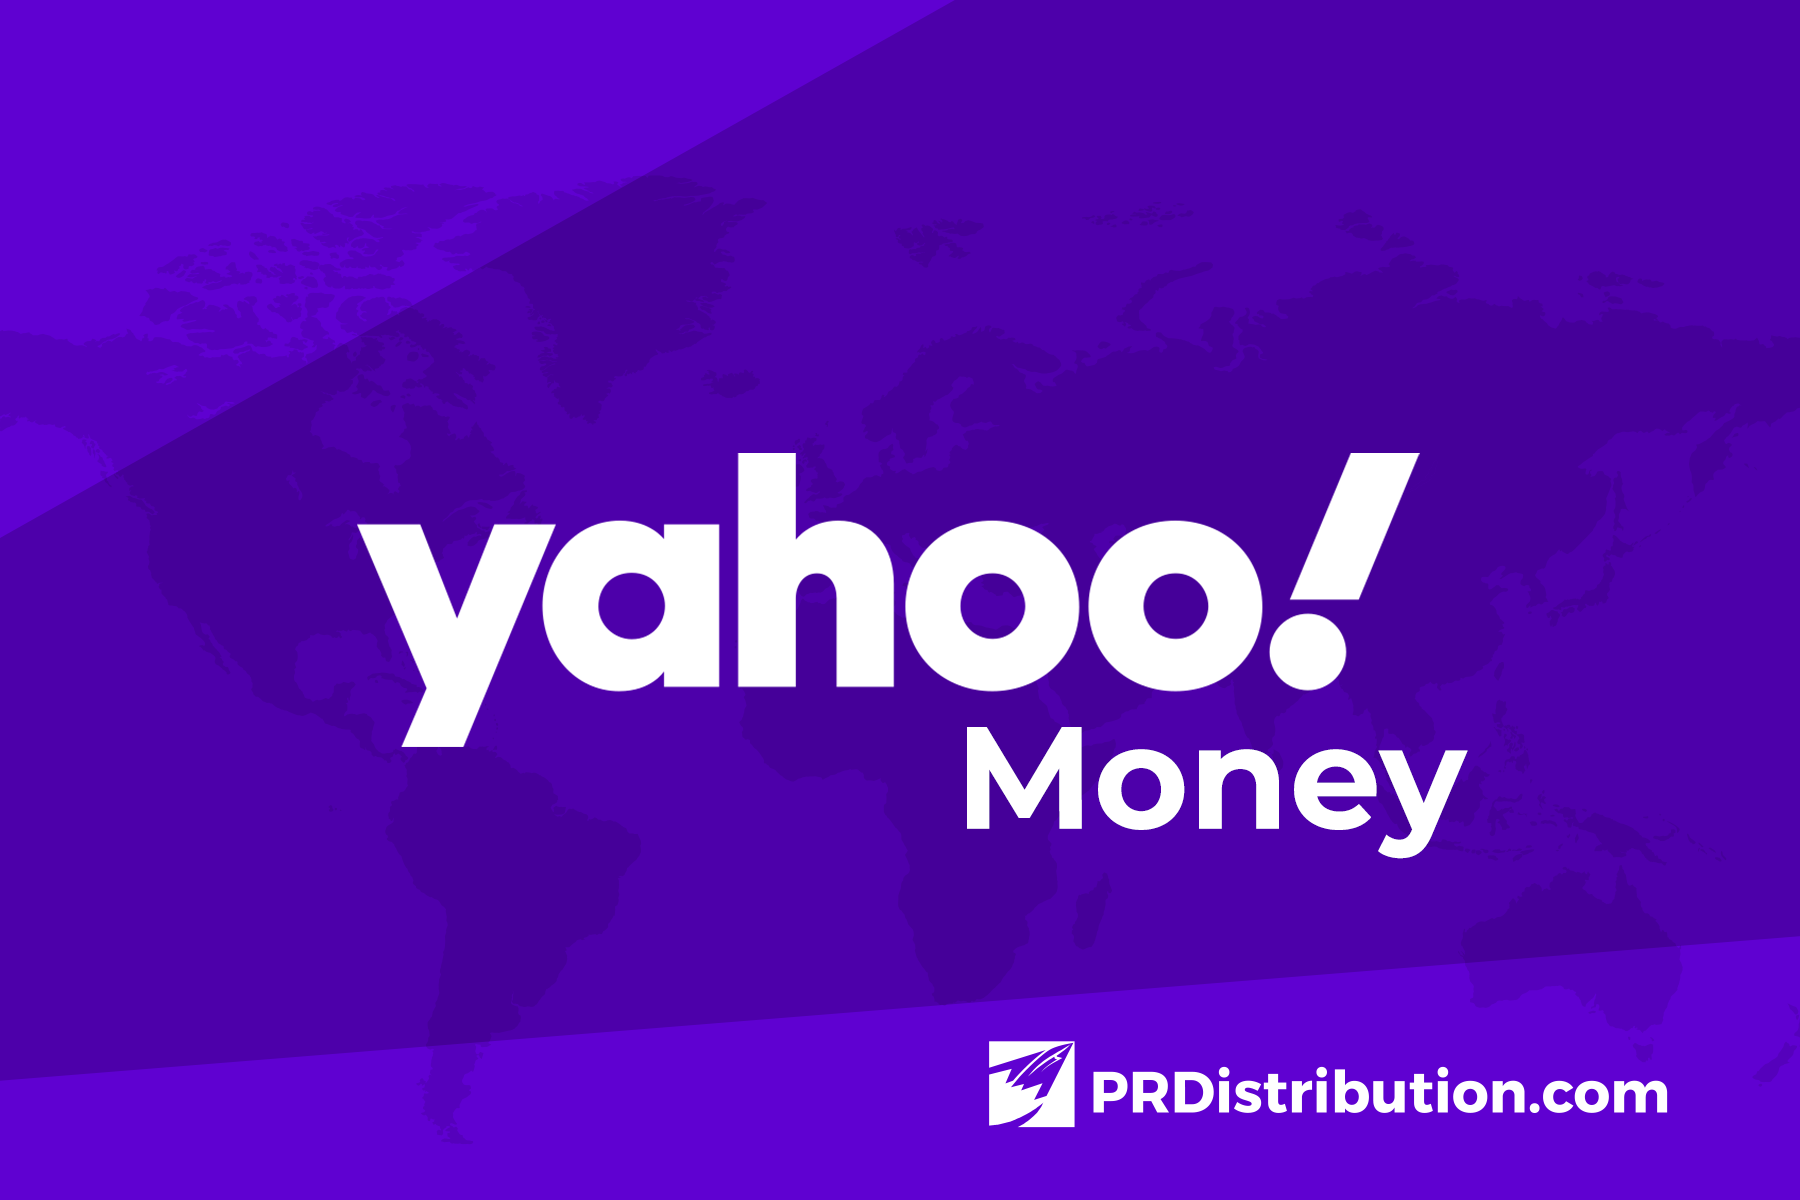 Yahoo Money